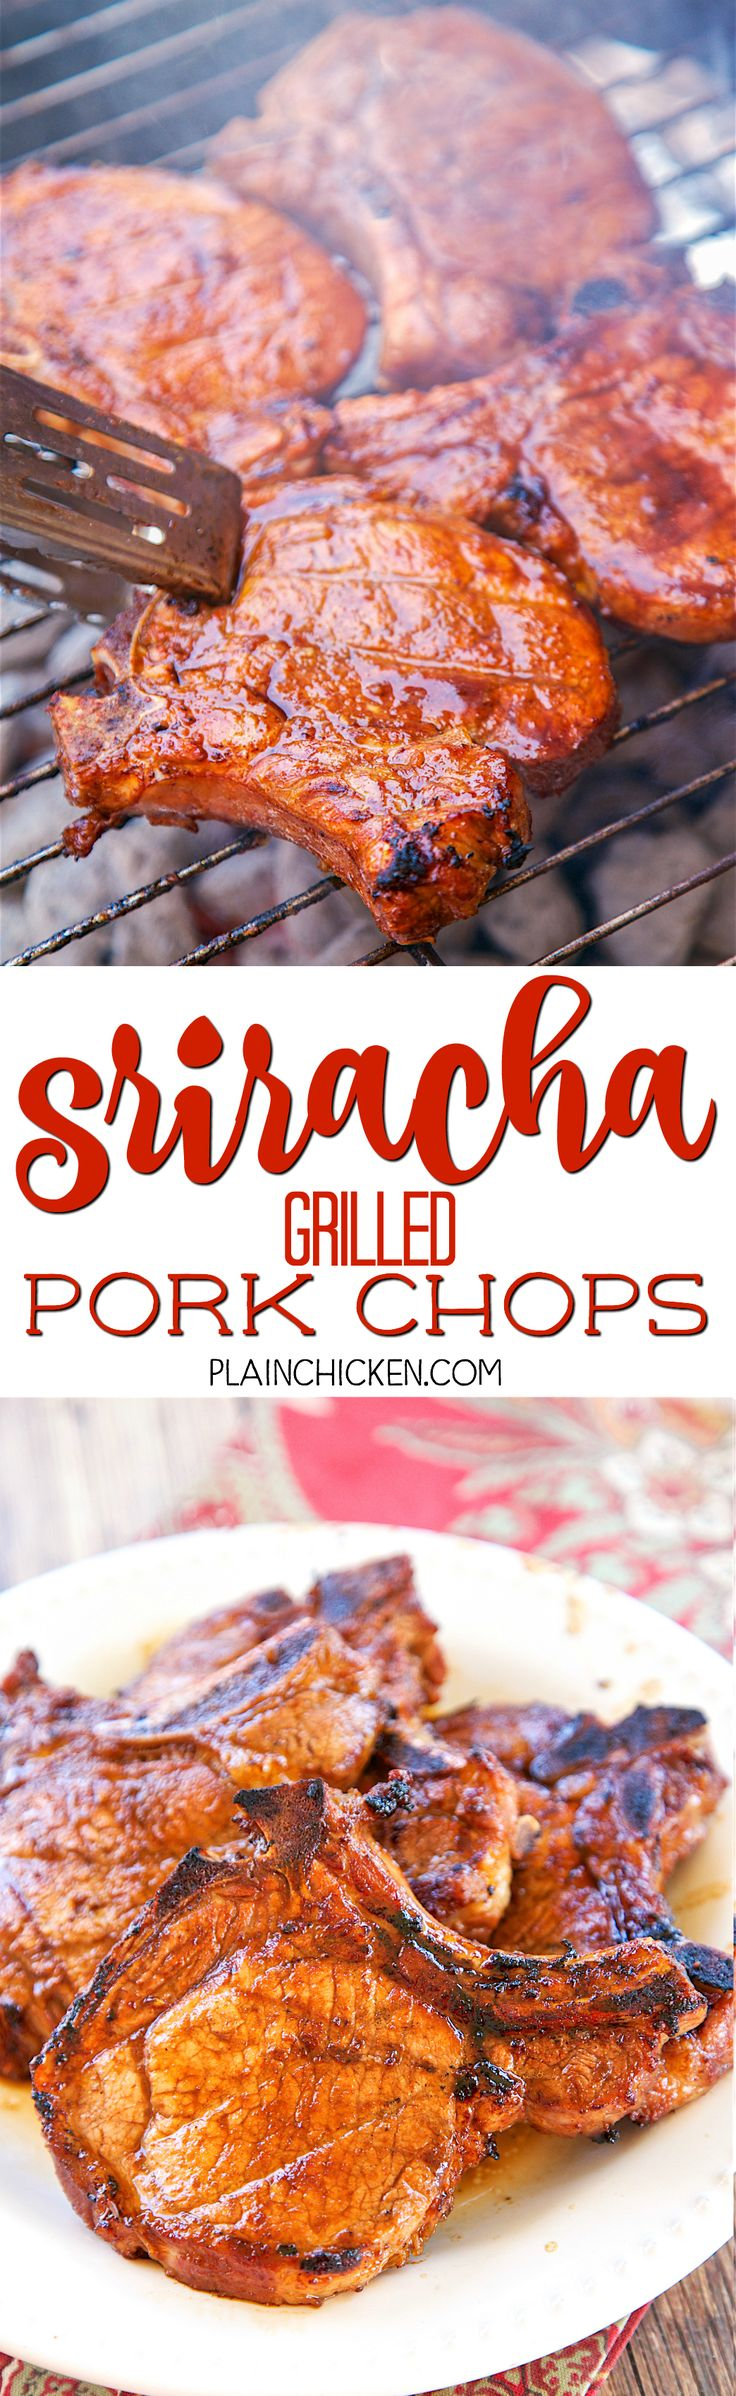 Sriracha Grilled Pork Chops - CRAZY good!! Only 6 ingredients!! Teriyaki sauce, Worcestershire sauce, sriracha, brown sugar, garlic and pork chops. Ready in minutes on the grill. These are THE BEST pork chops I've ever eaten. Tender, juicy, sweet and spicy in one bite.